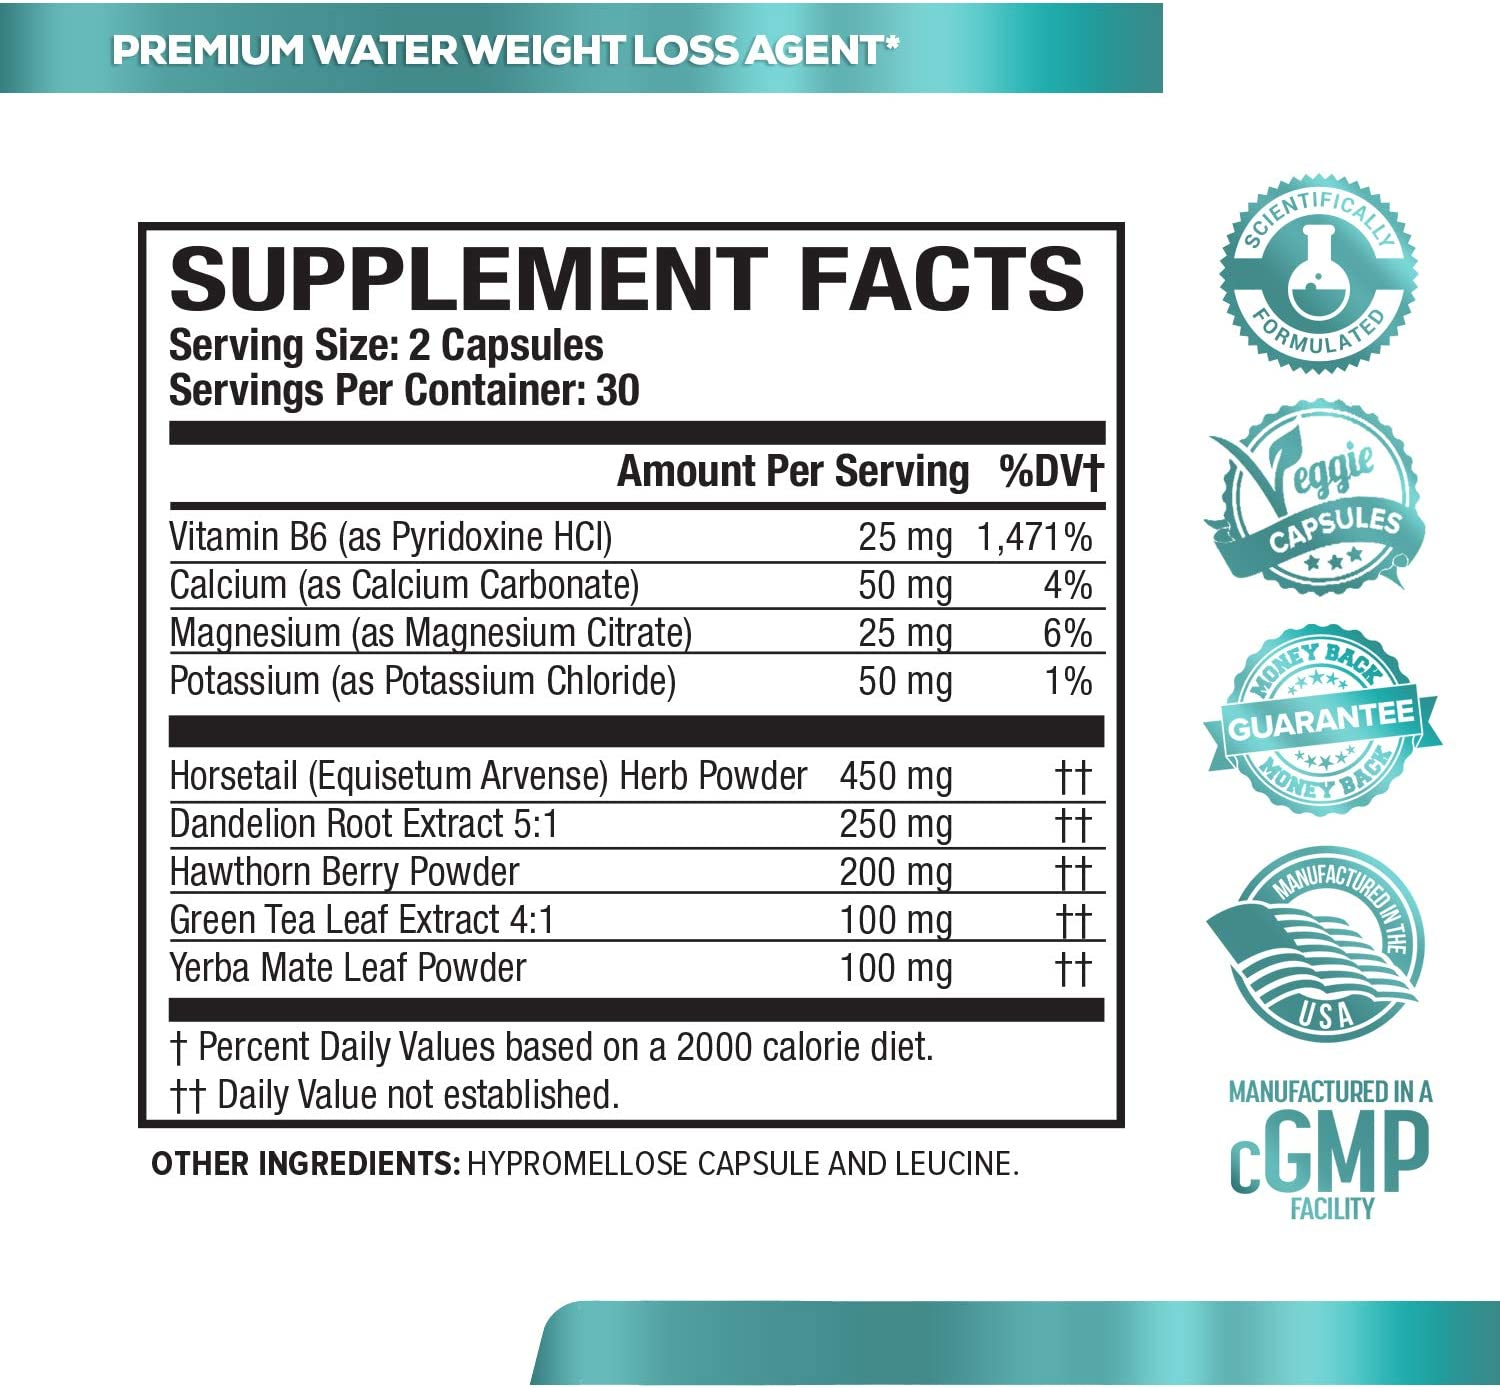 Dry-XT Water Weight Loss Diuretic Pills - Natural Supplement for Reducing Water Retention & Bloating Relief w/Dandelion Root Extract, Potassium, 7 More Powerful Ingredients - 60 Veggie Capsules